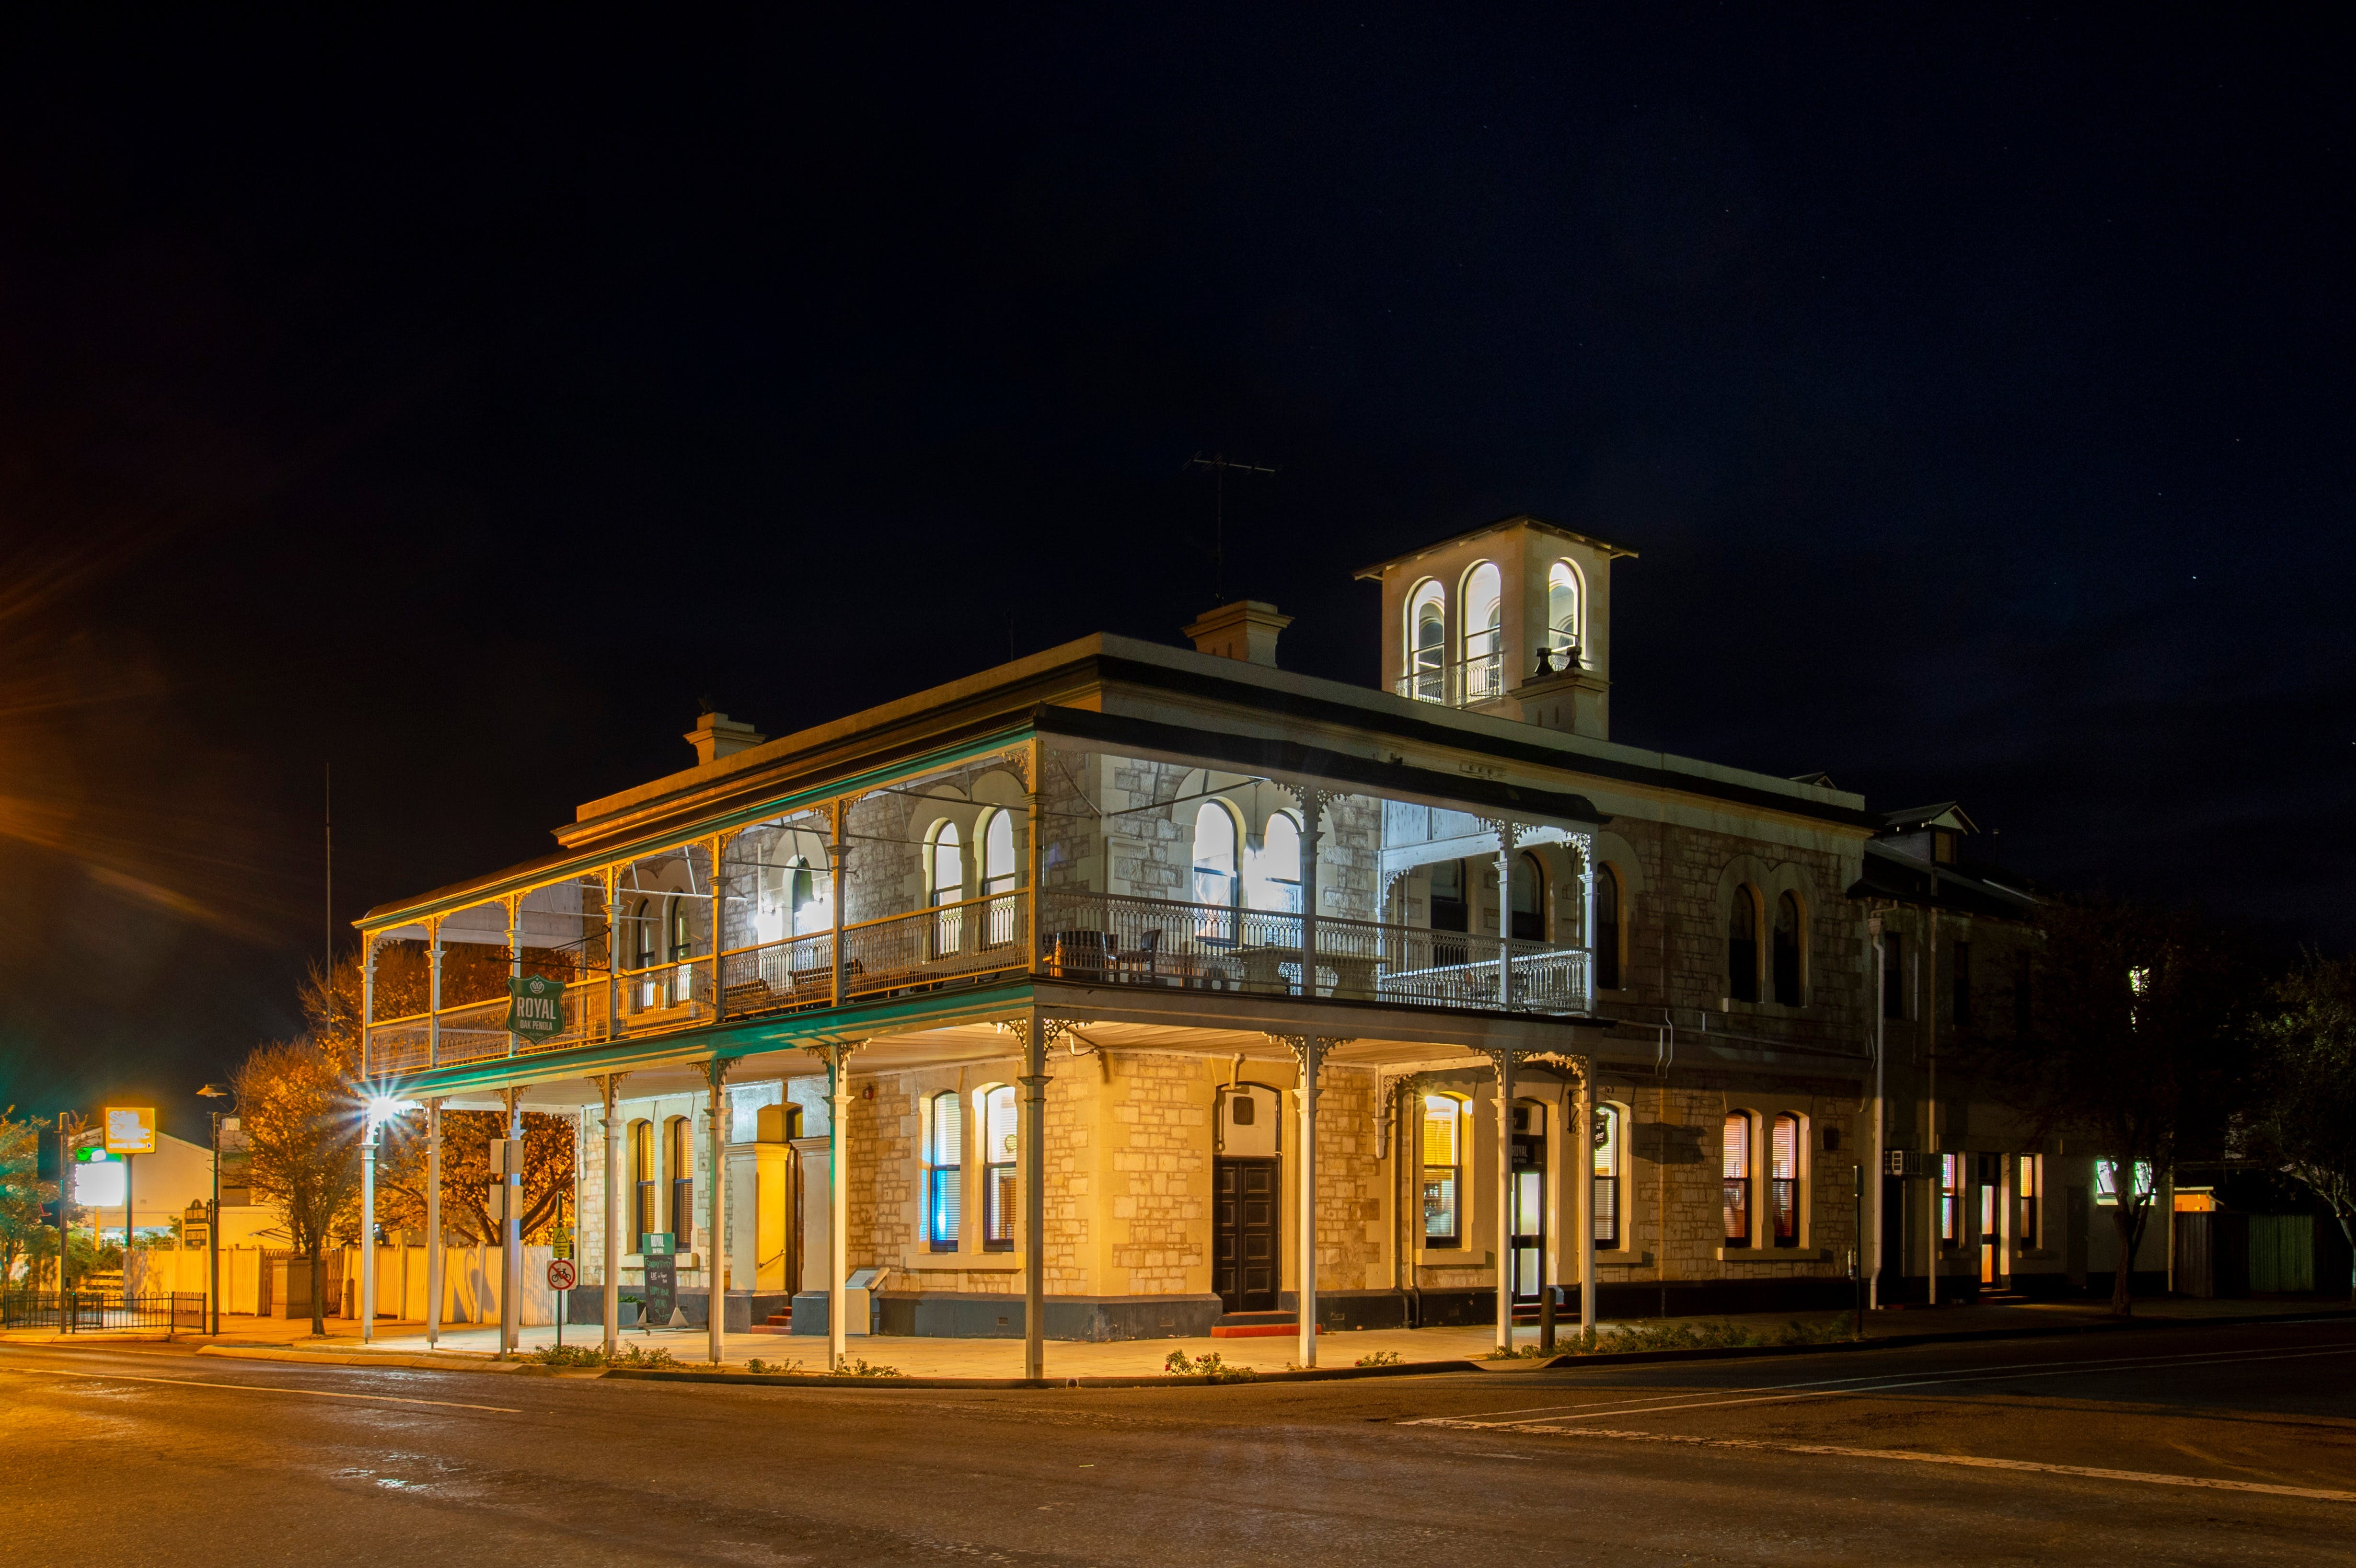 Royal Oak Hotel Penola - New South Wales Tourism